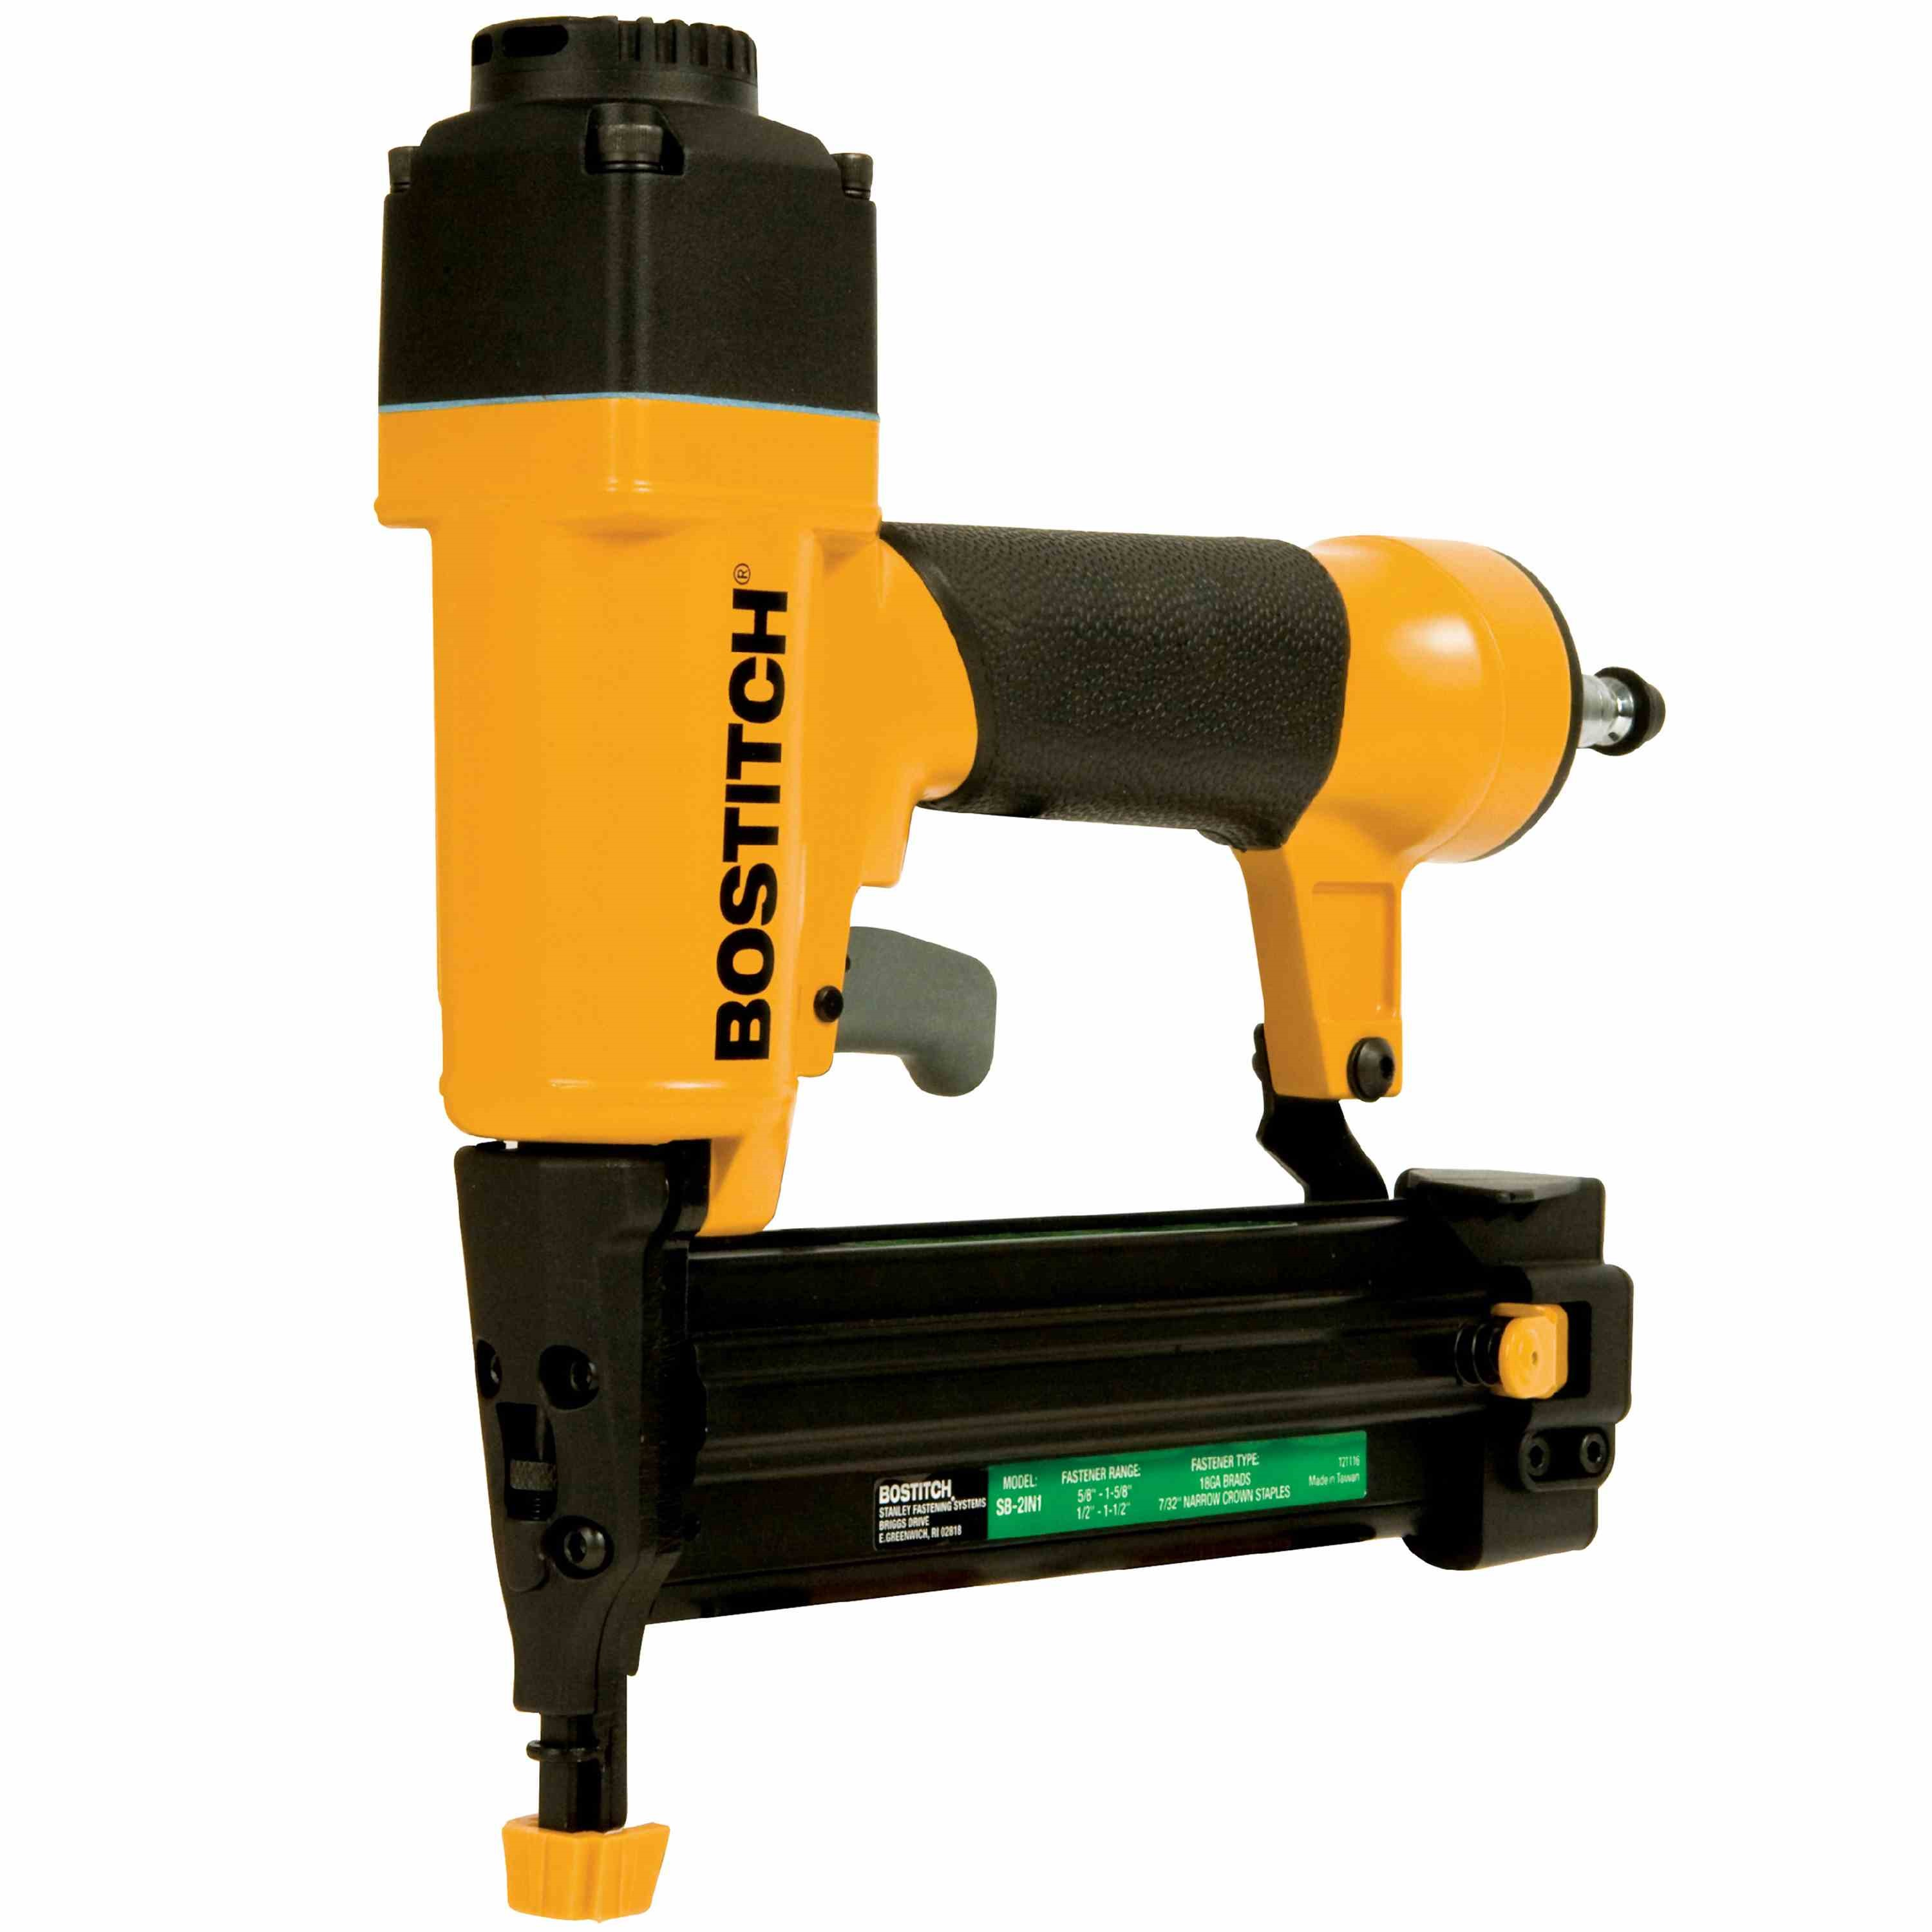 Bostitch - Combo Brad Nailer  Finish Stapler Kit - SB-2IN1